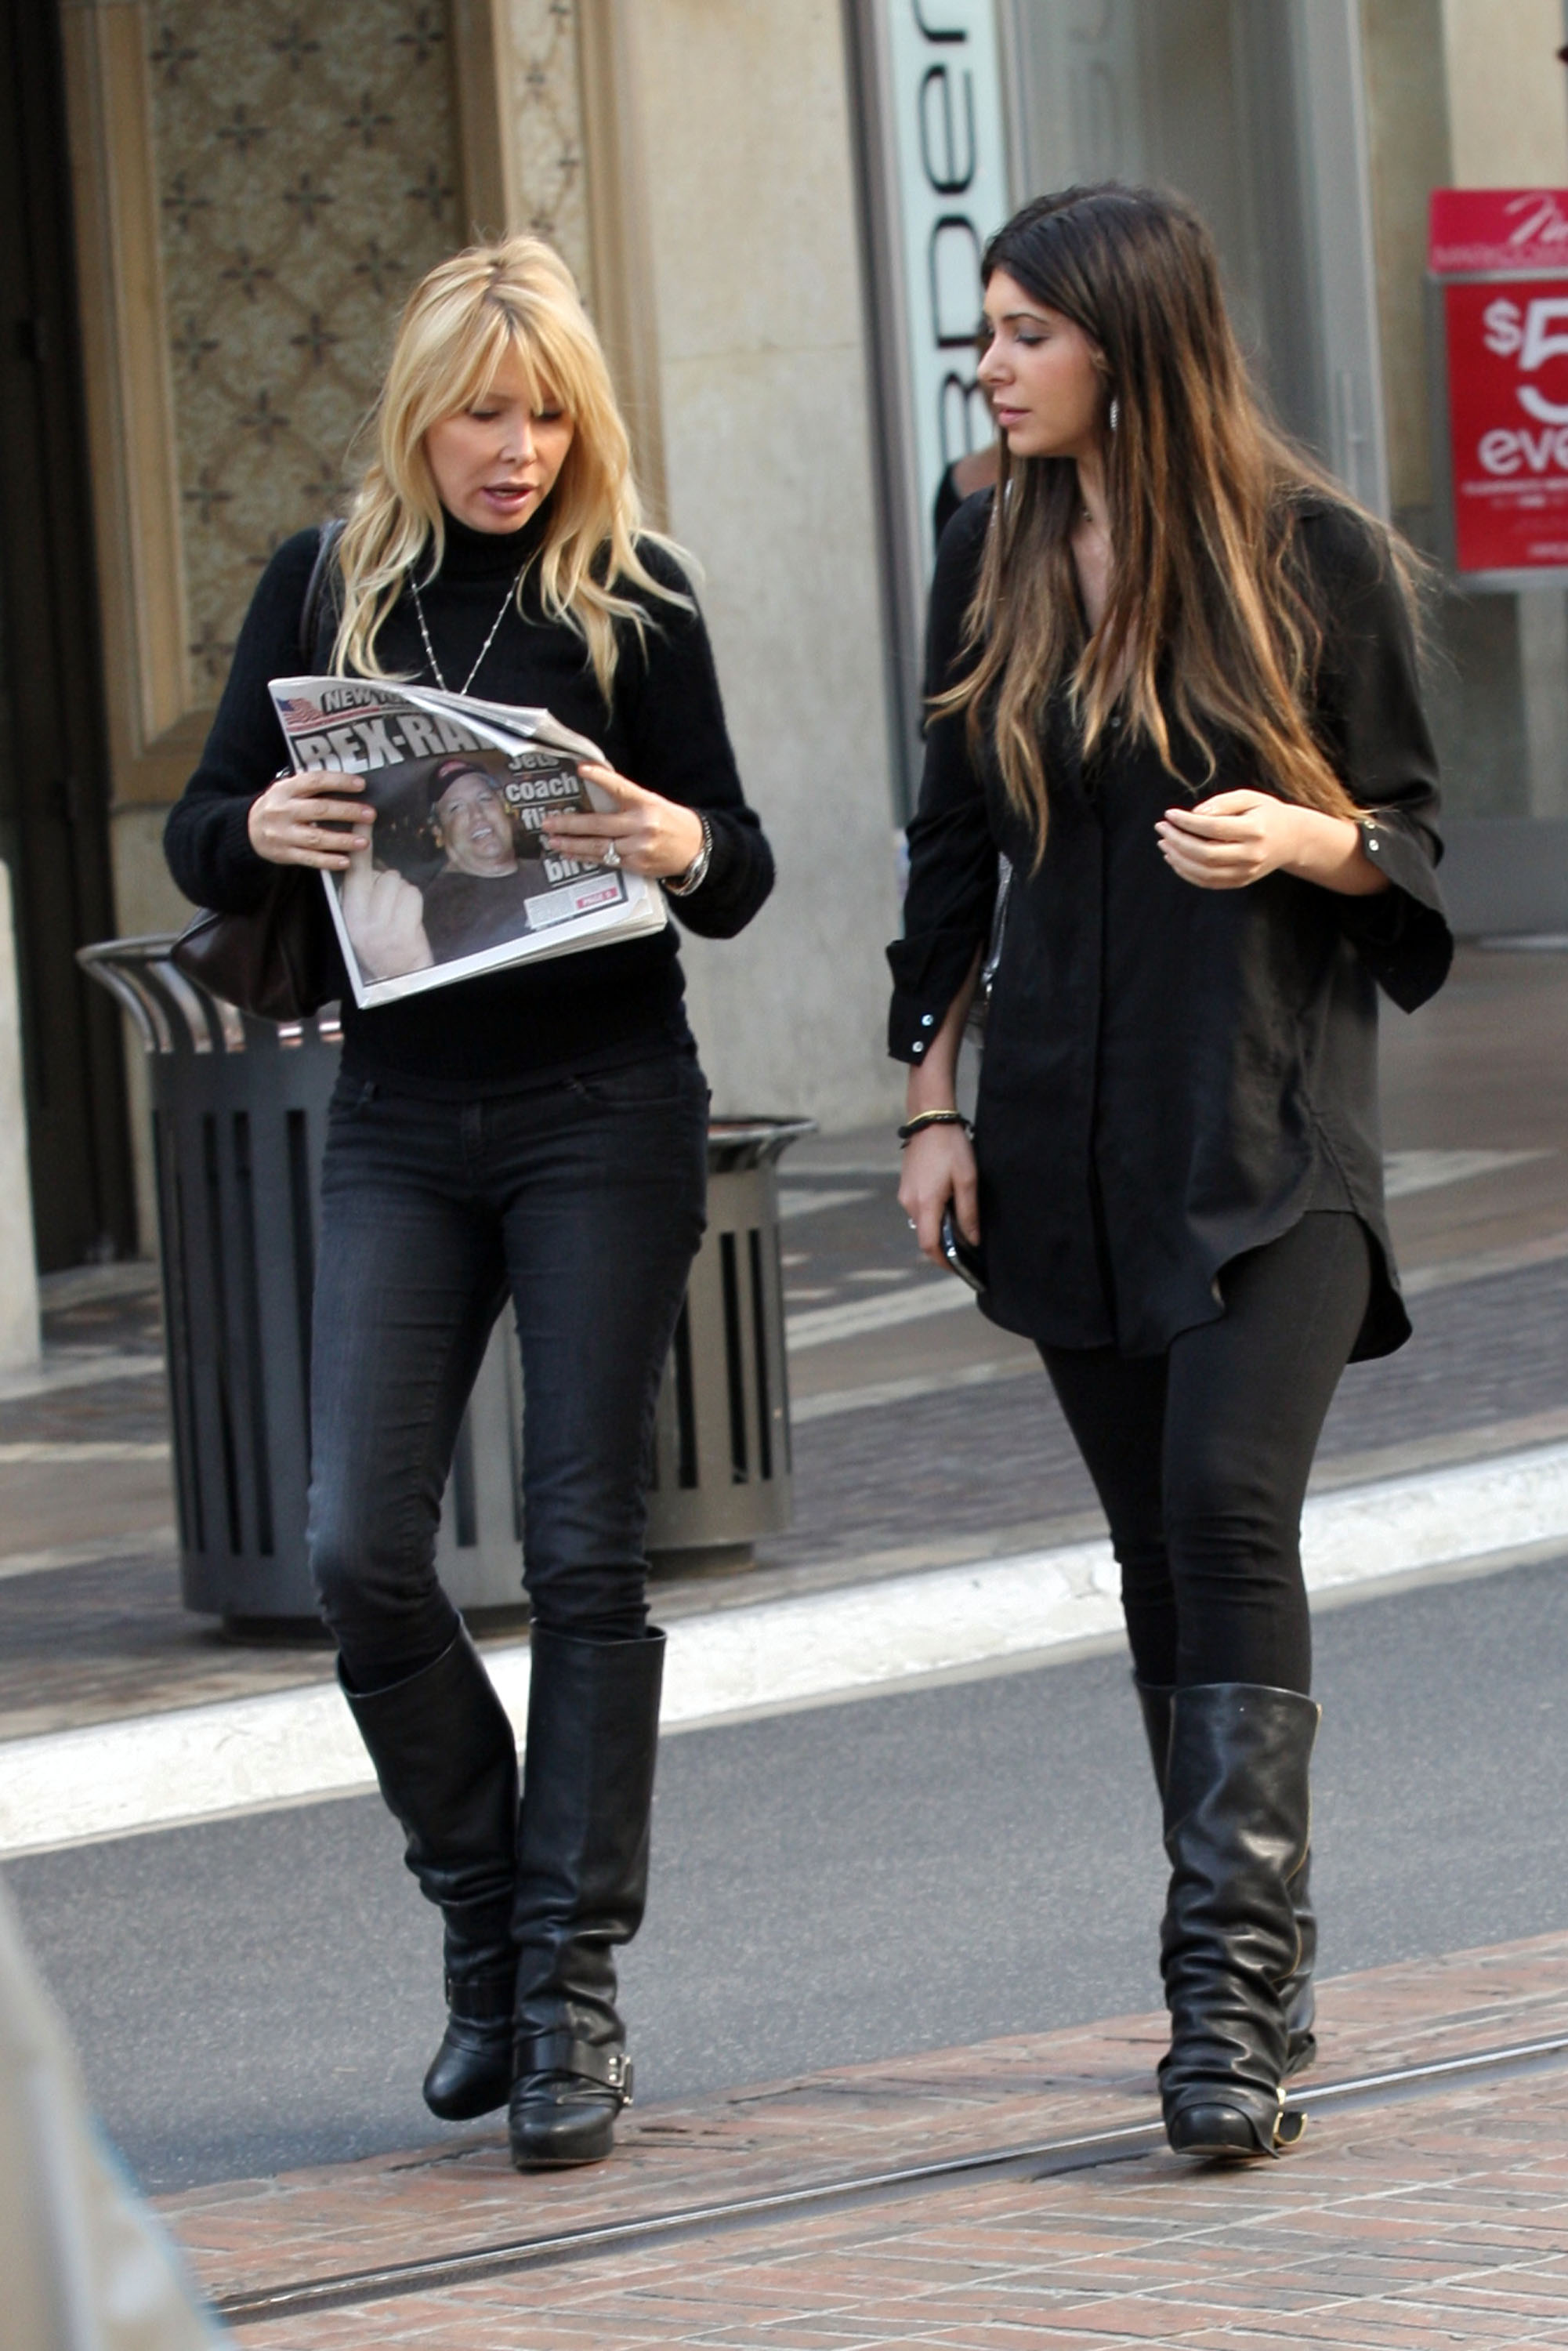 24824_celebrity-paradise.com-The_Elder-Brittny_Gastineau_2010-02-01_-_out_shopping_in_Hollywood_720_122_2lo.jpg